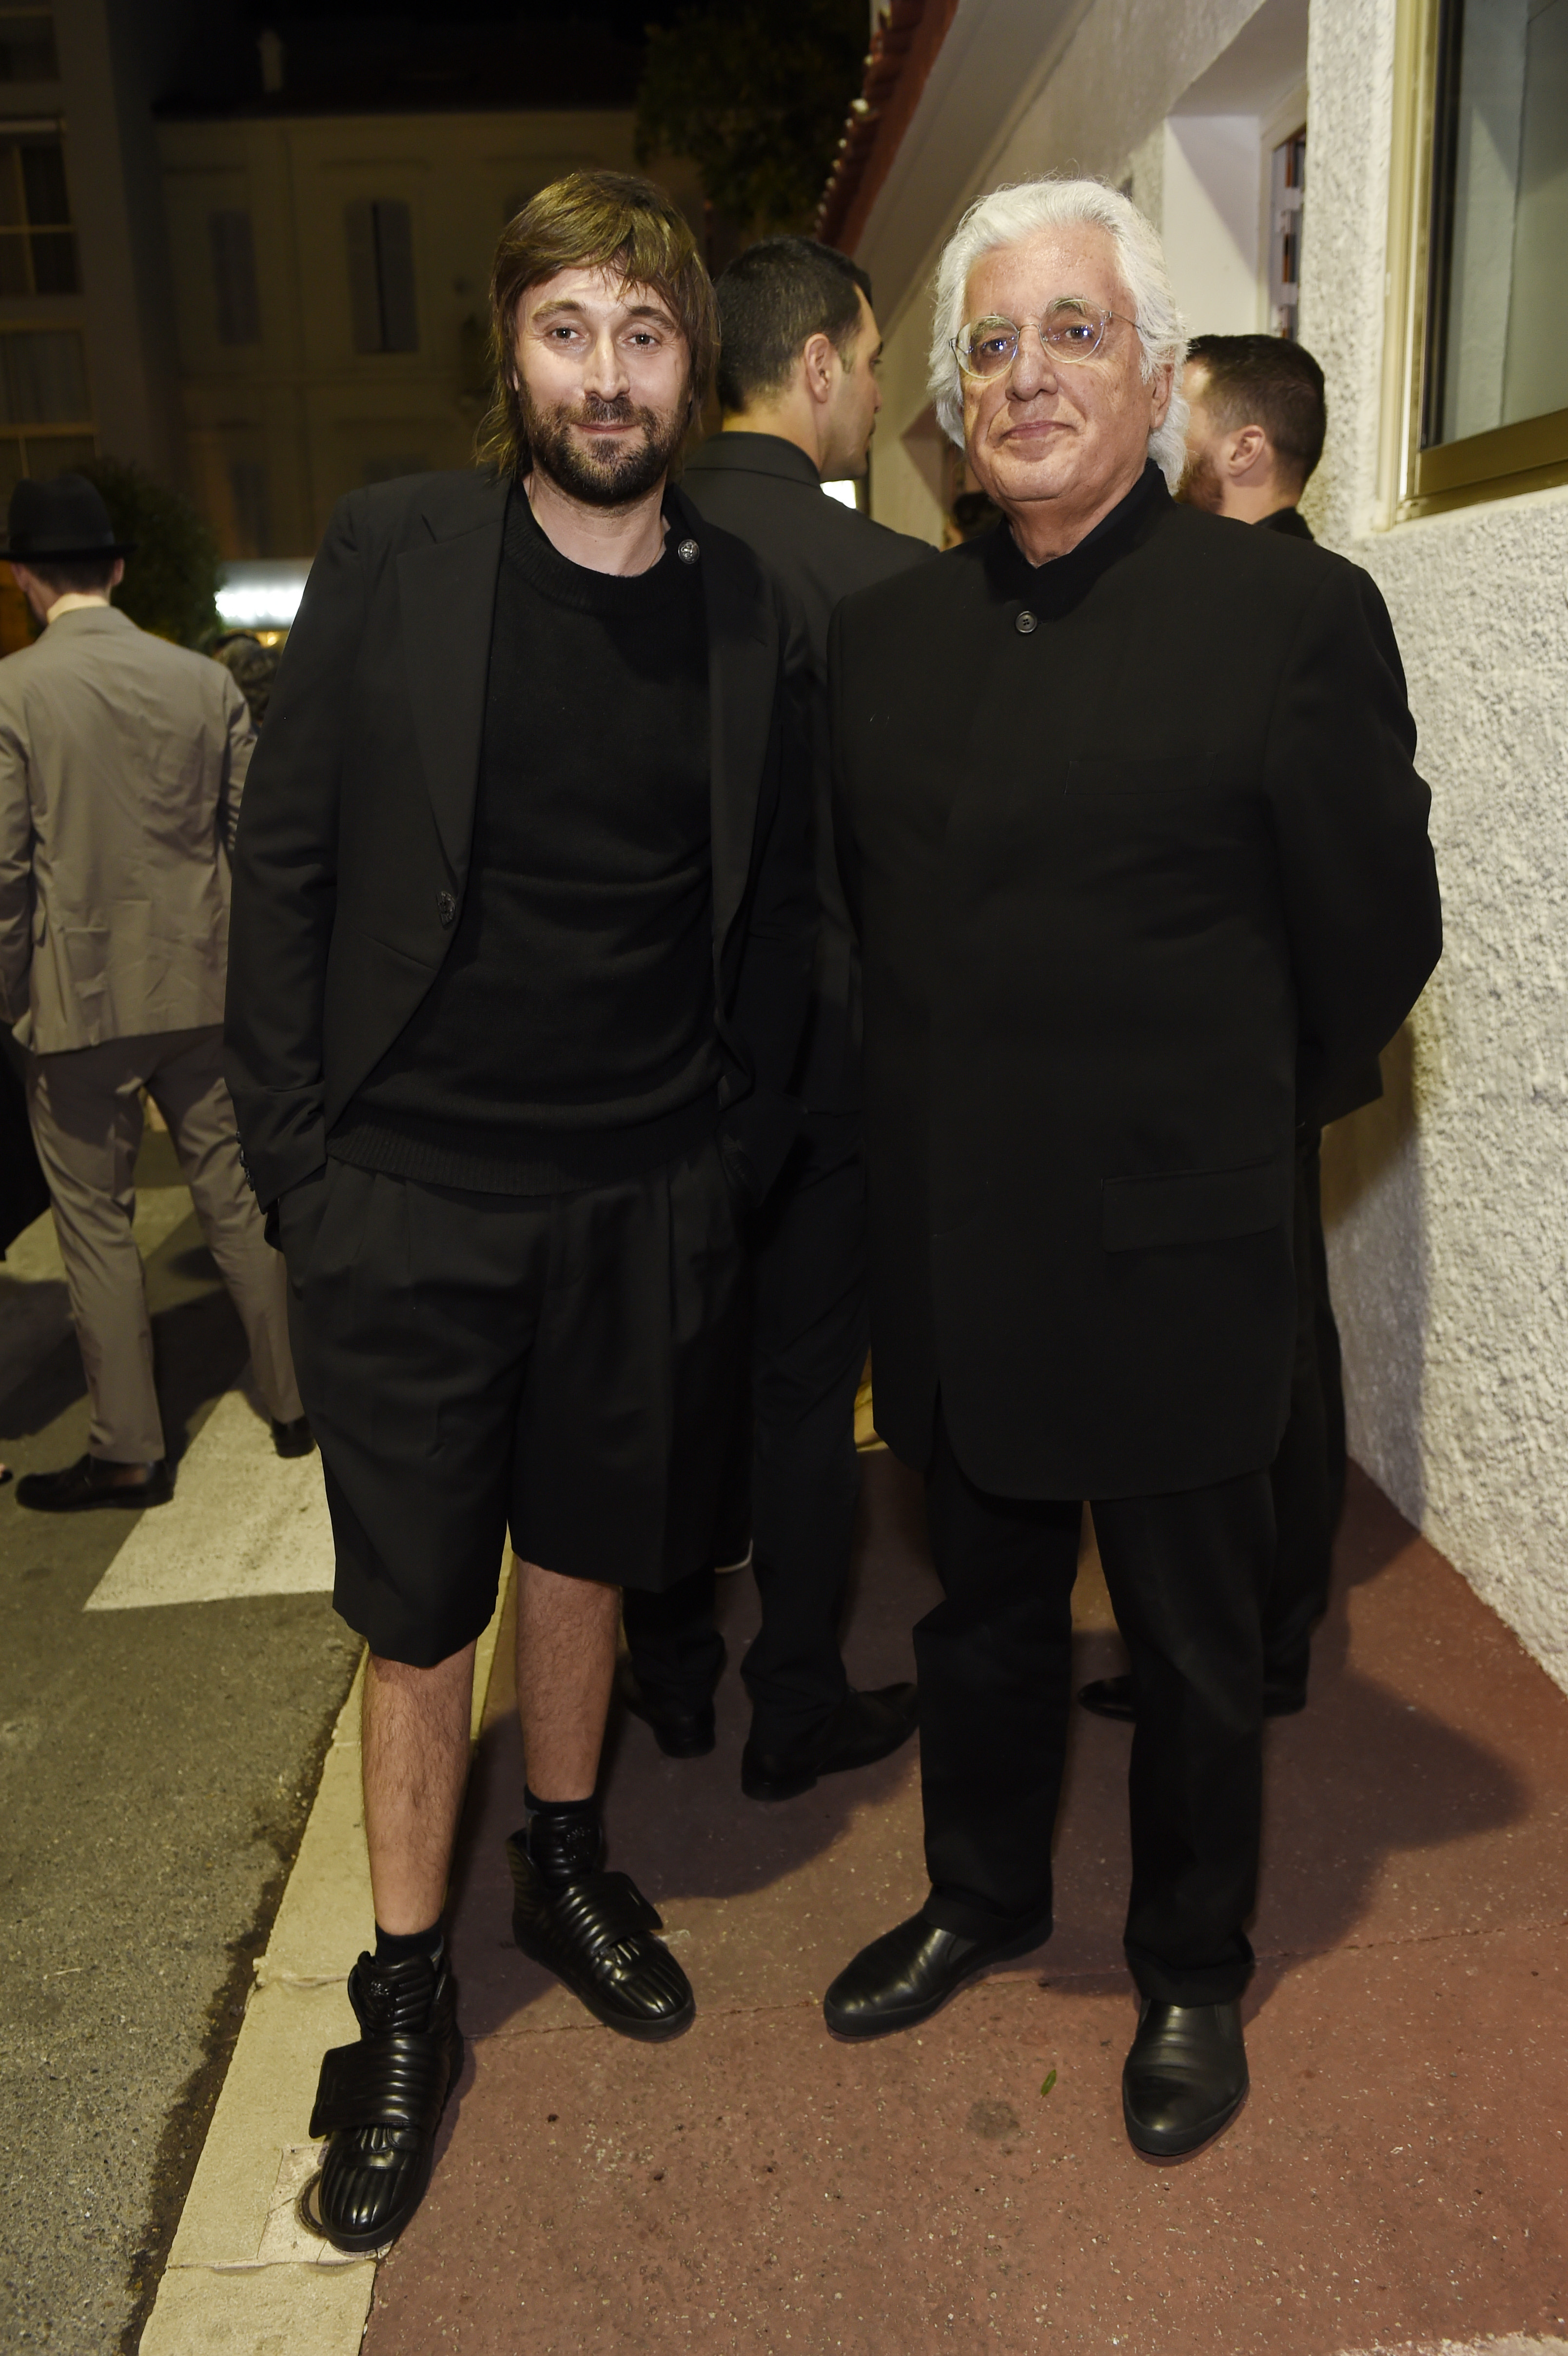 CANNES, FRANCE - MAY 22:  Francesco Vezzoli and Germano Celant attend Prada Private Dinner during the 70th annual Cannes Film Festival at Restaurant Fred L'Ecailler on May 22, 2017 in Cannes, France.  (Photo by Antony Jones/Getty Images for Prada)